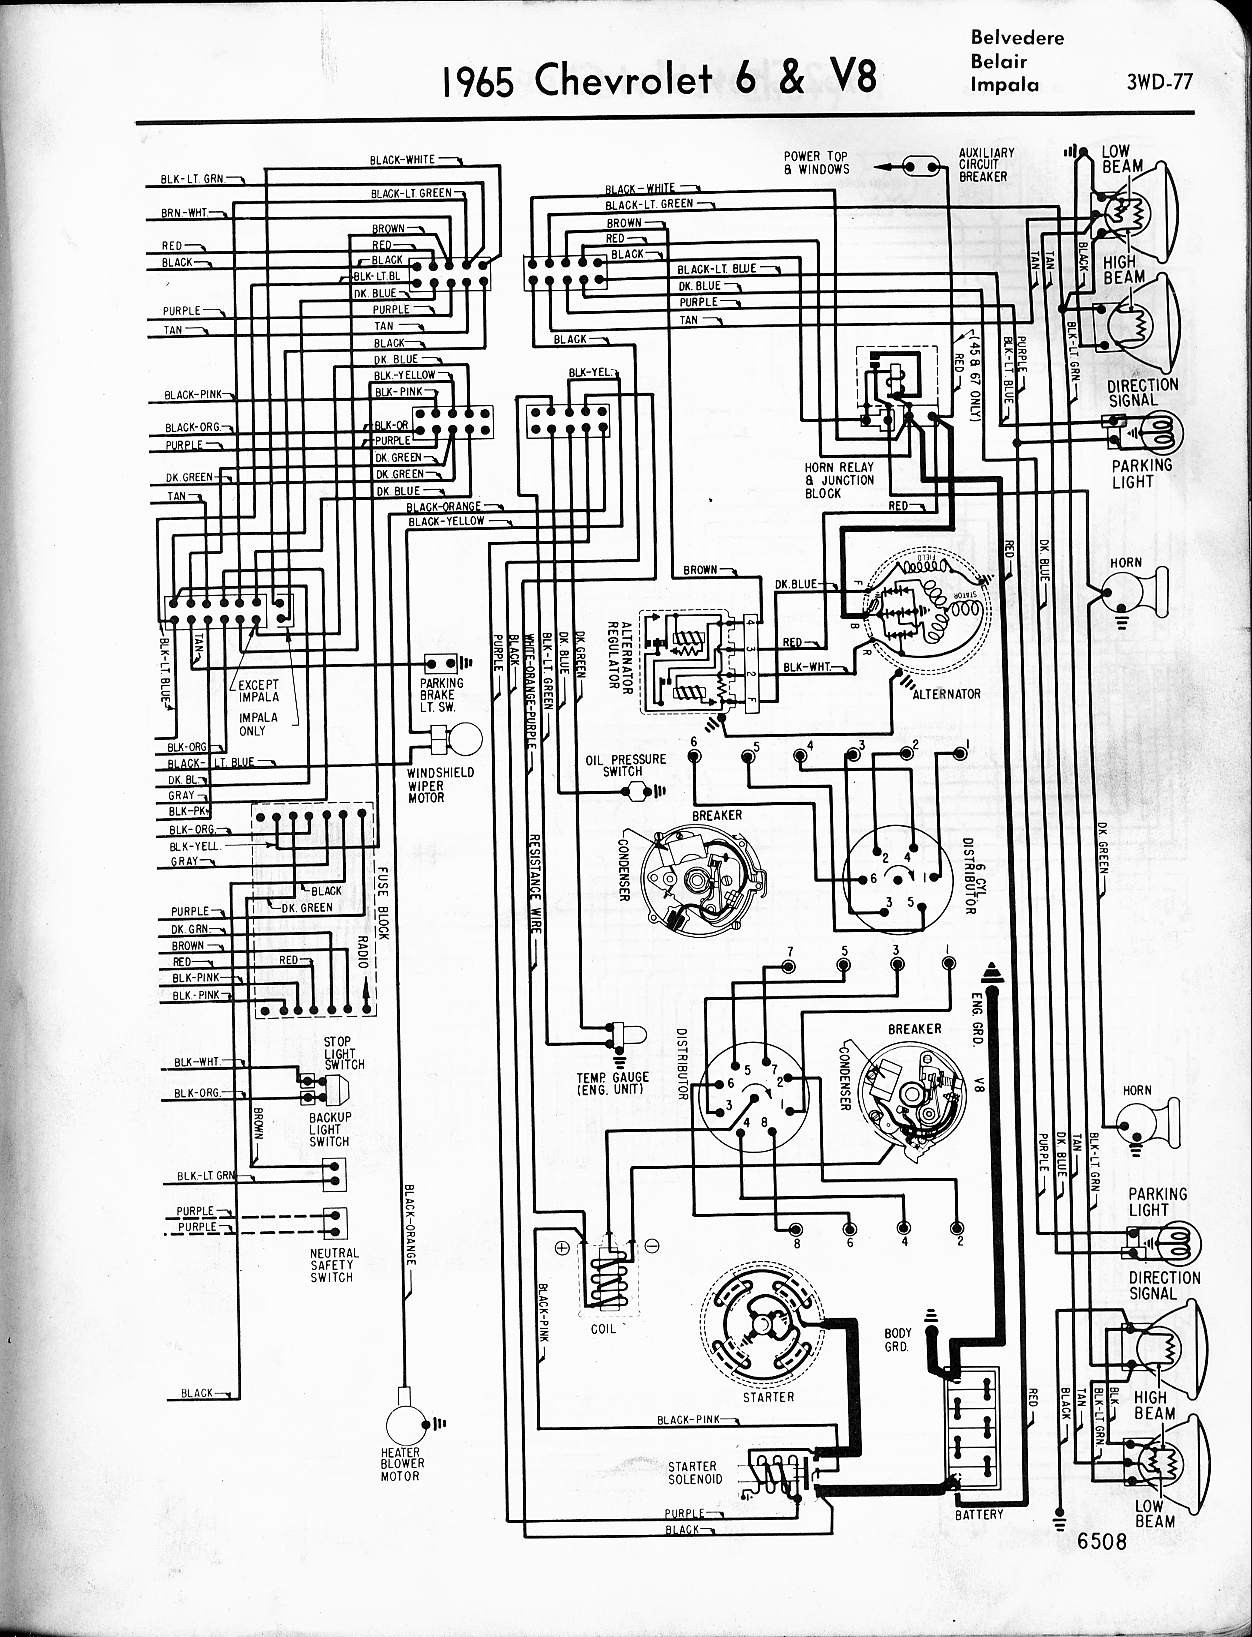 2000 Chevy Malibu Fuse Box Wiring Library Diagram Besides 1961 Impala Rh Onzegroup Co 08